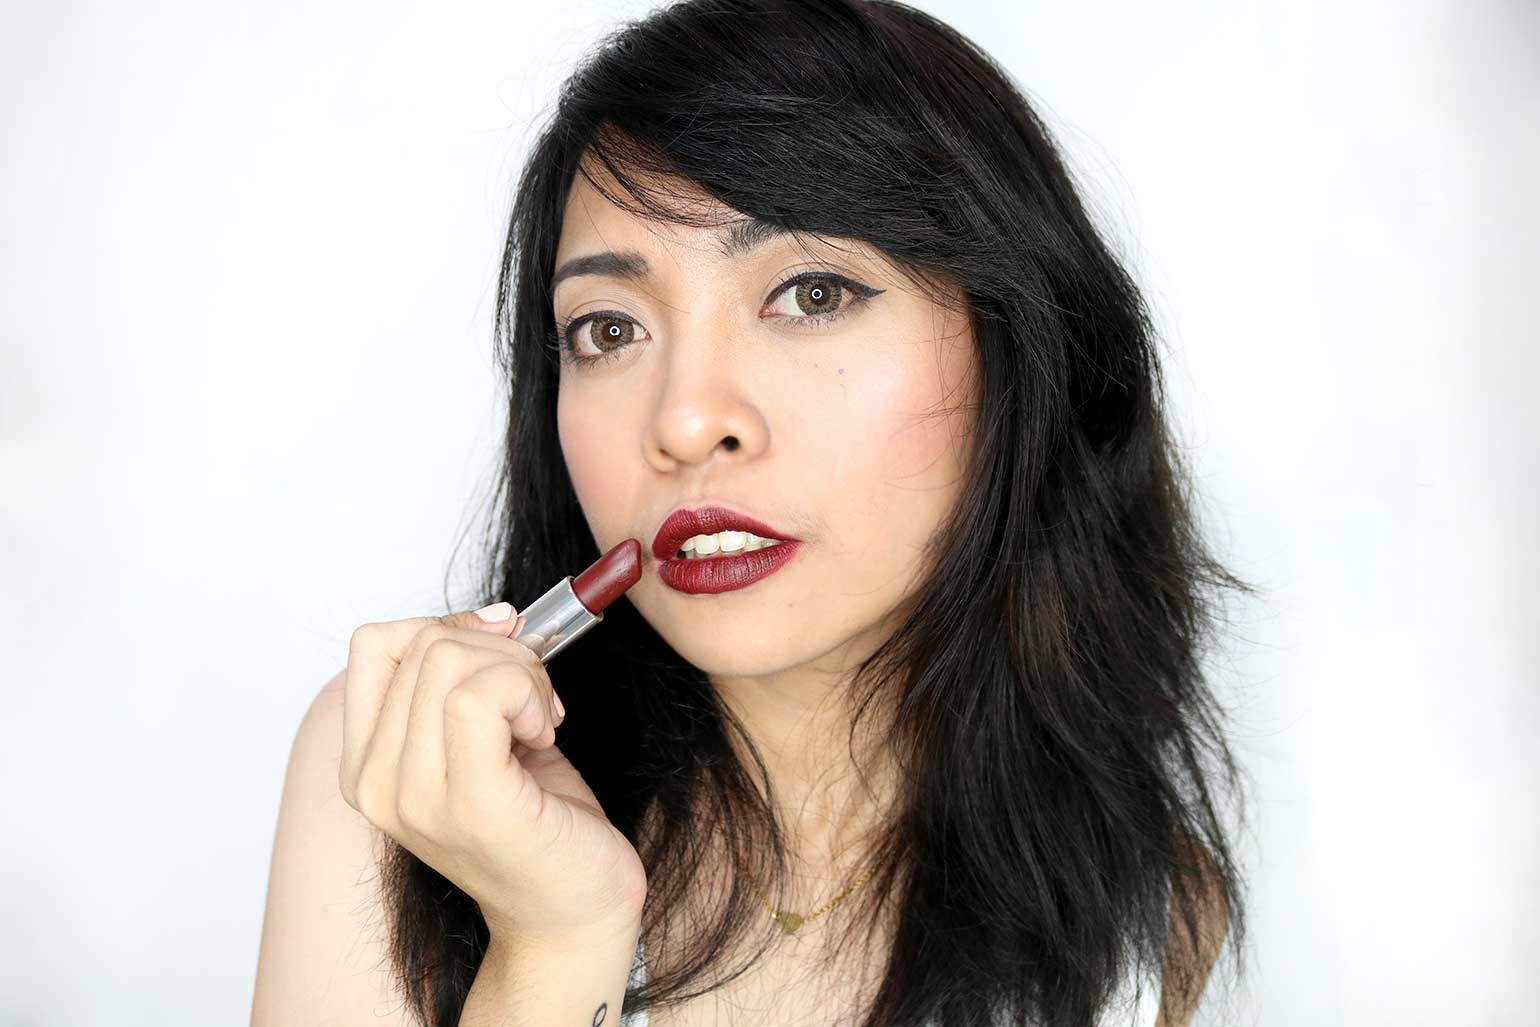 9 Maybelline Creamy Matte Brown Nudes Collection Burgundy Blush Review Swatches - Gen-zel.com (c)